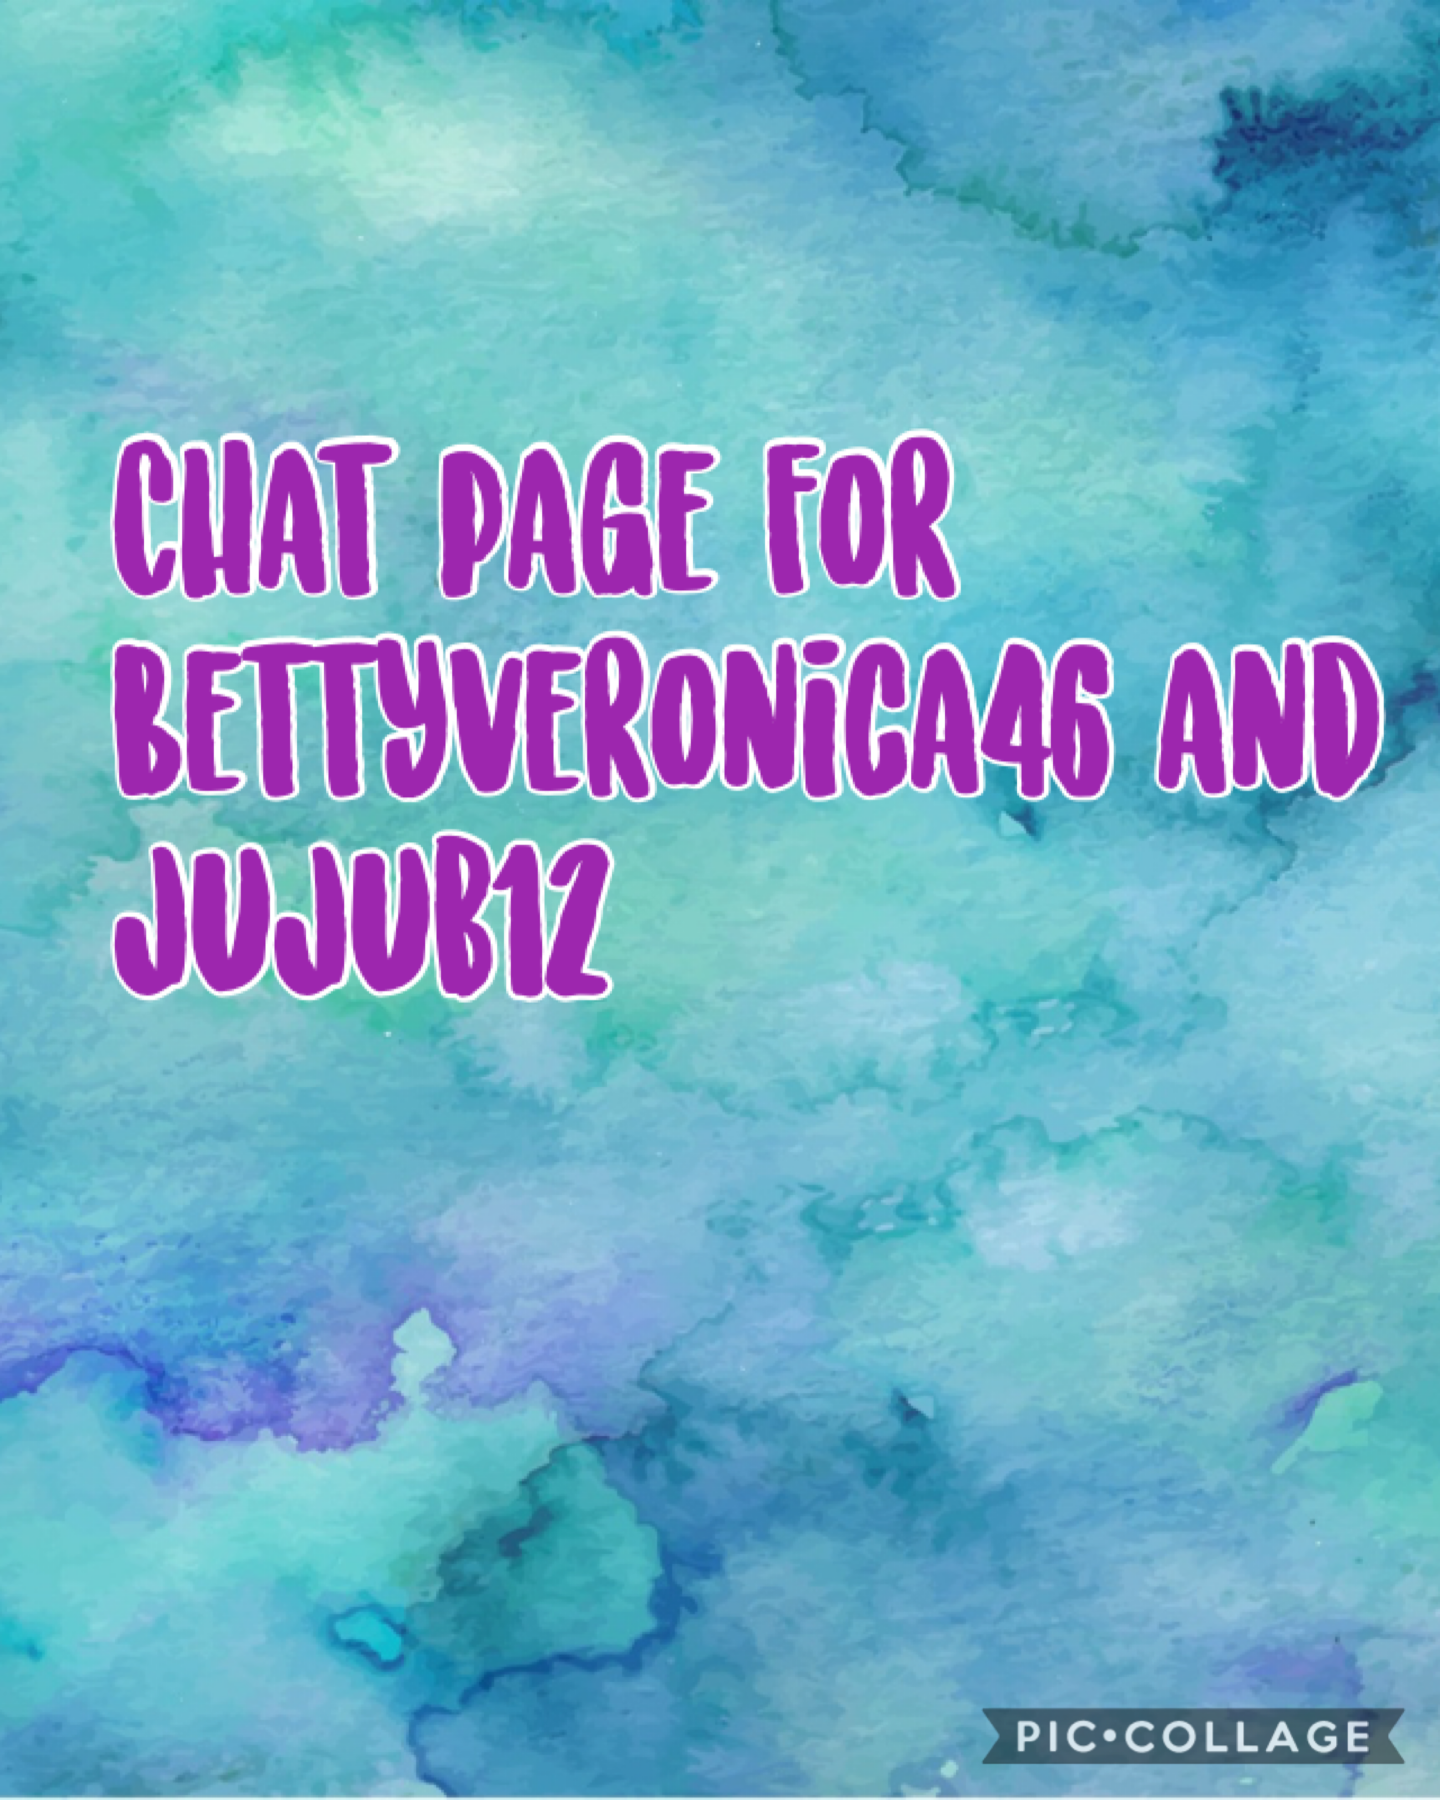 Chat page with Jujub12